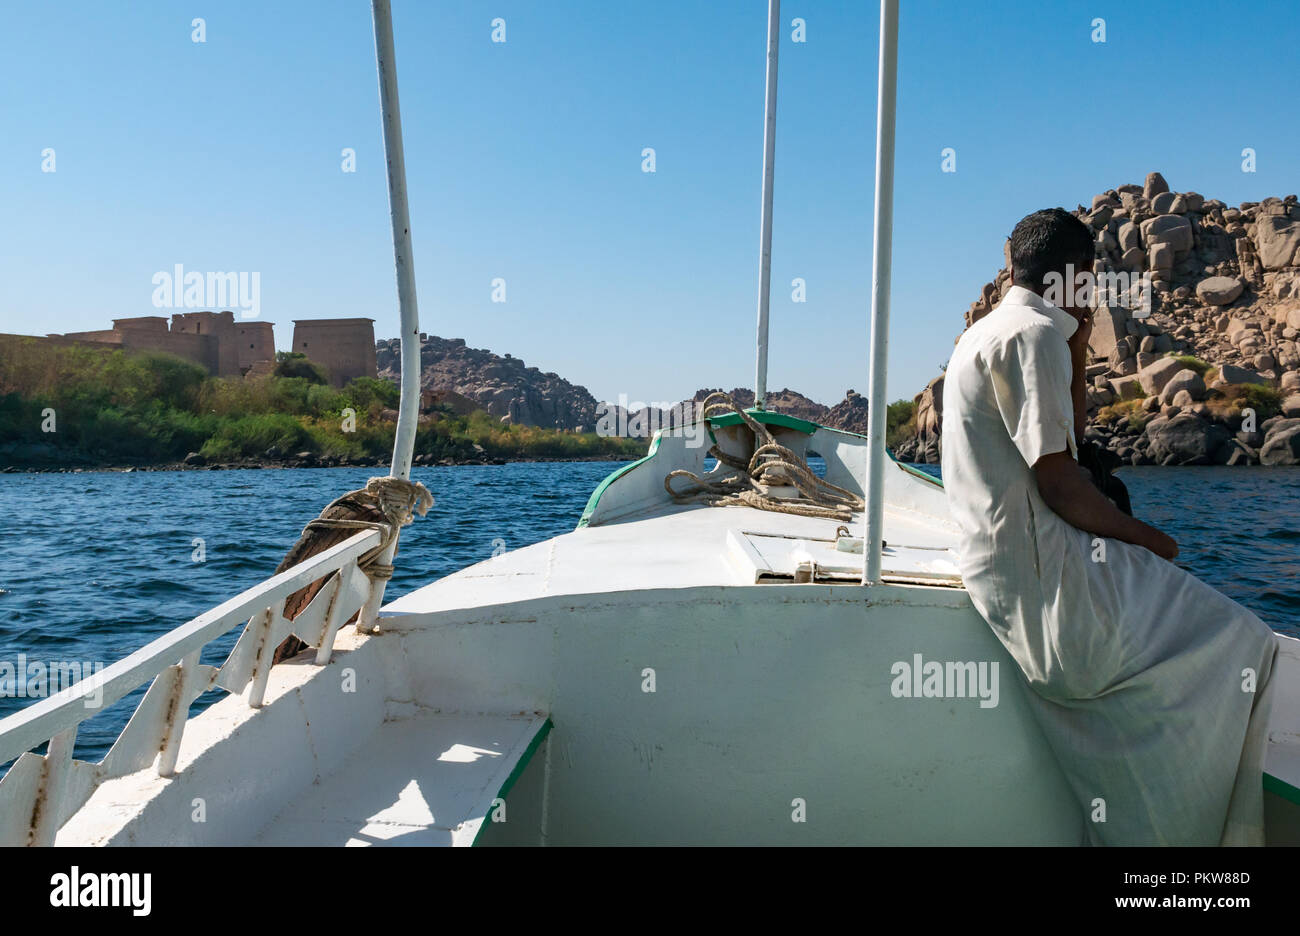 tourist-boat-with-local-egyptian-man-on-